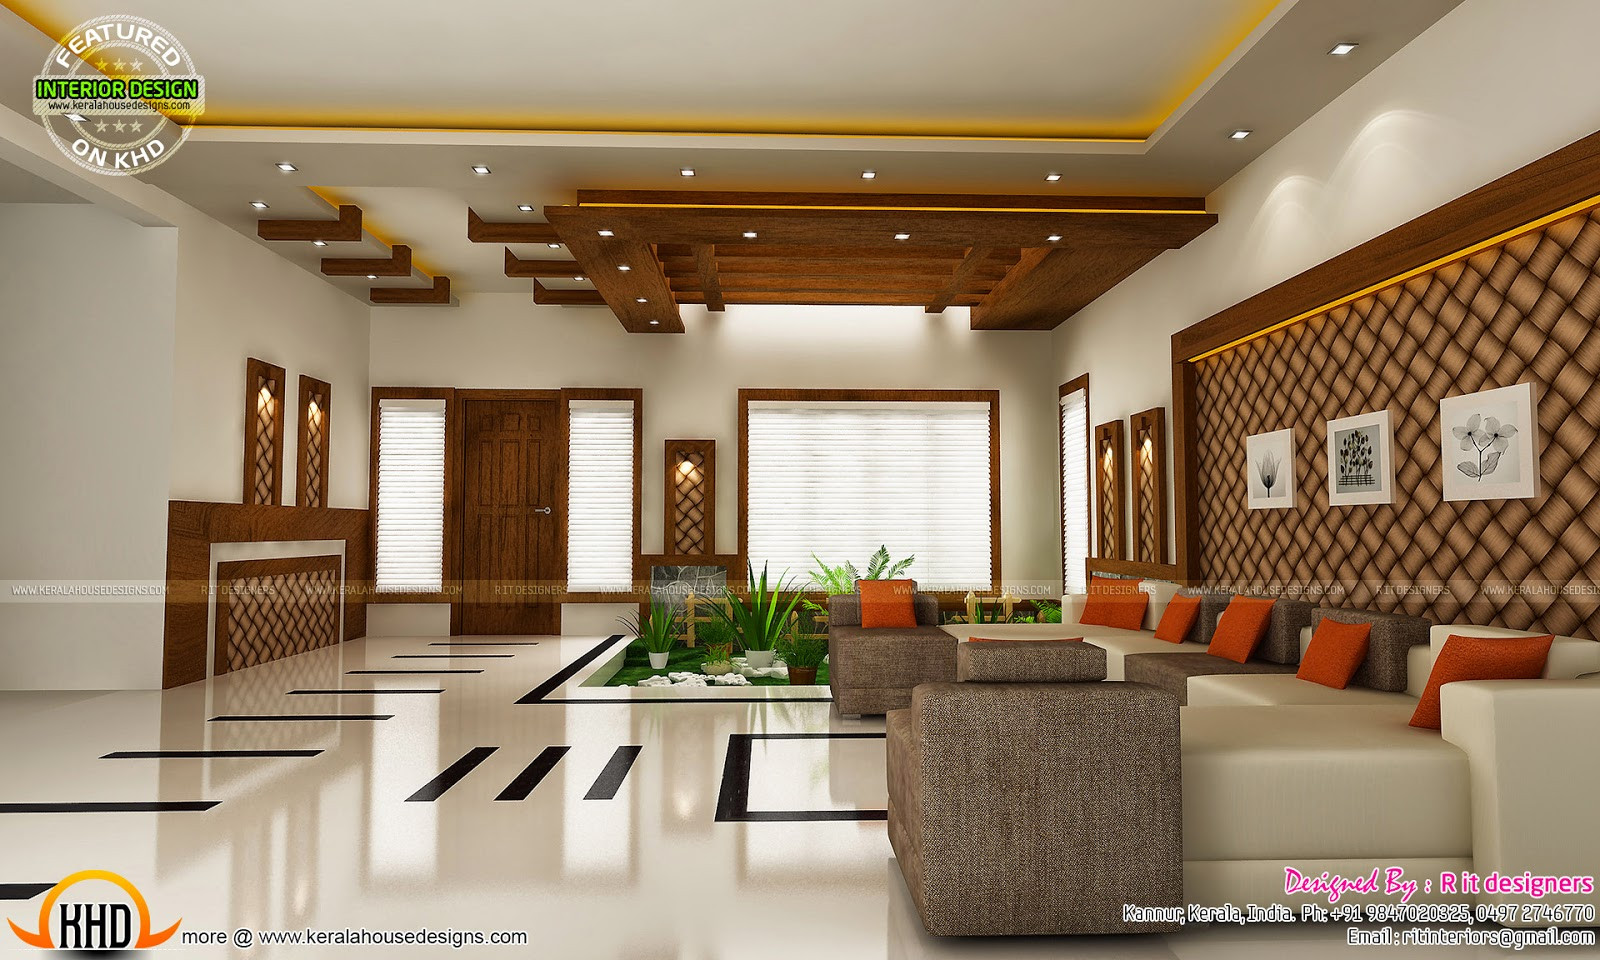 Home Interior Design Kerala Style. lastest 25 kerala home interior design dining room style 26 Popular Kerala Home Interior Design Dining Room  rbservis com